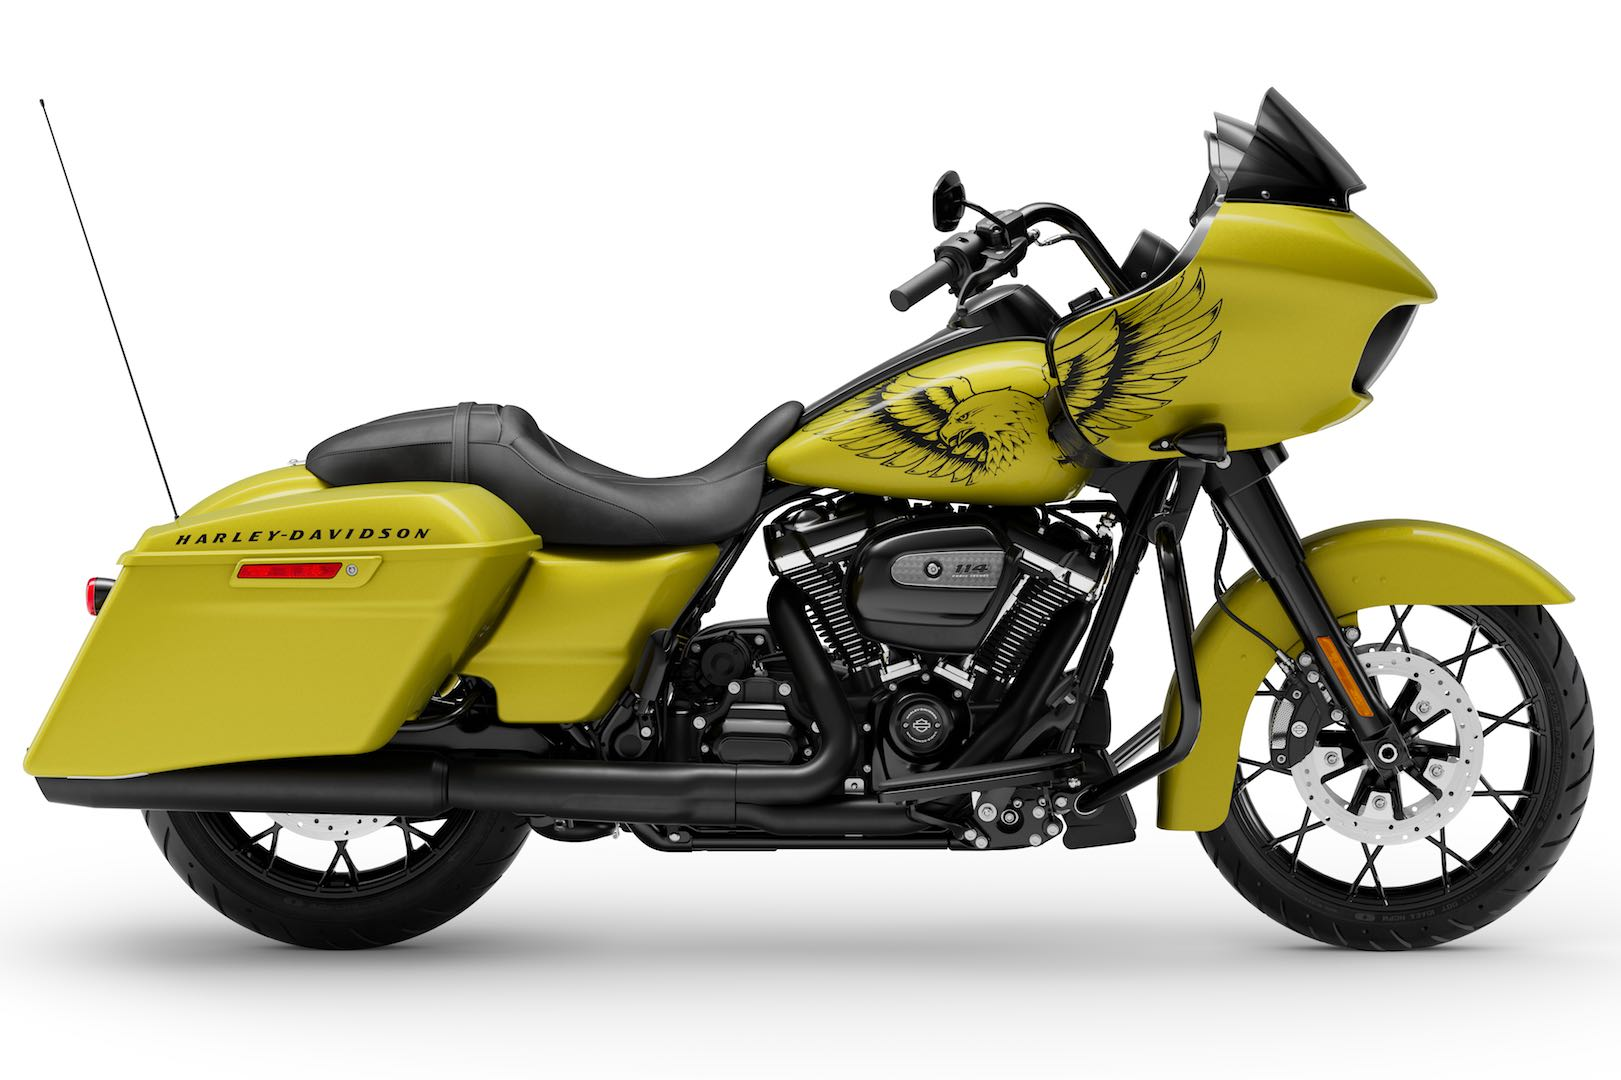 Harley-Davidson Unveils Road Glide in Eagle Eye Yellow Paint Special